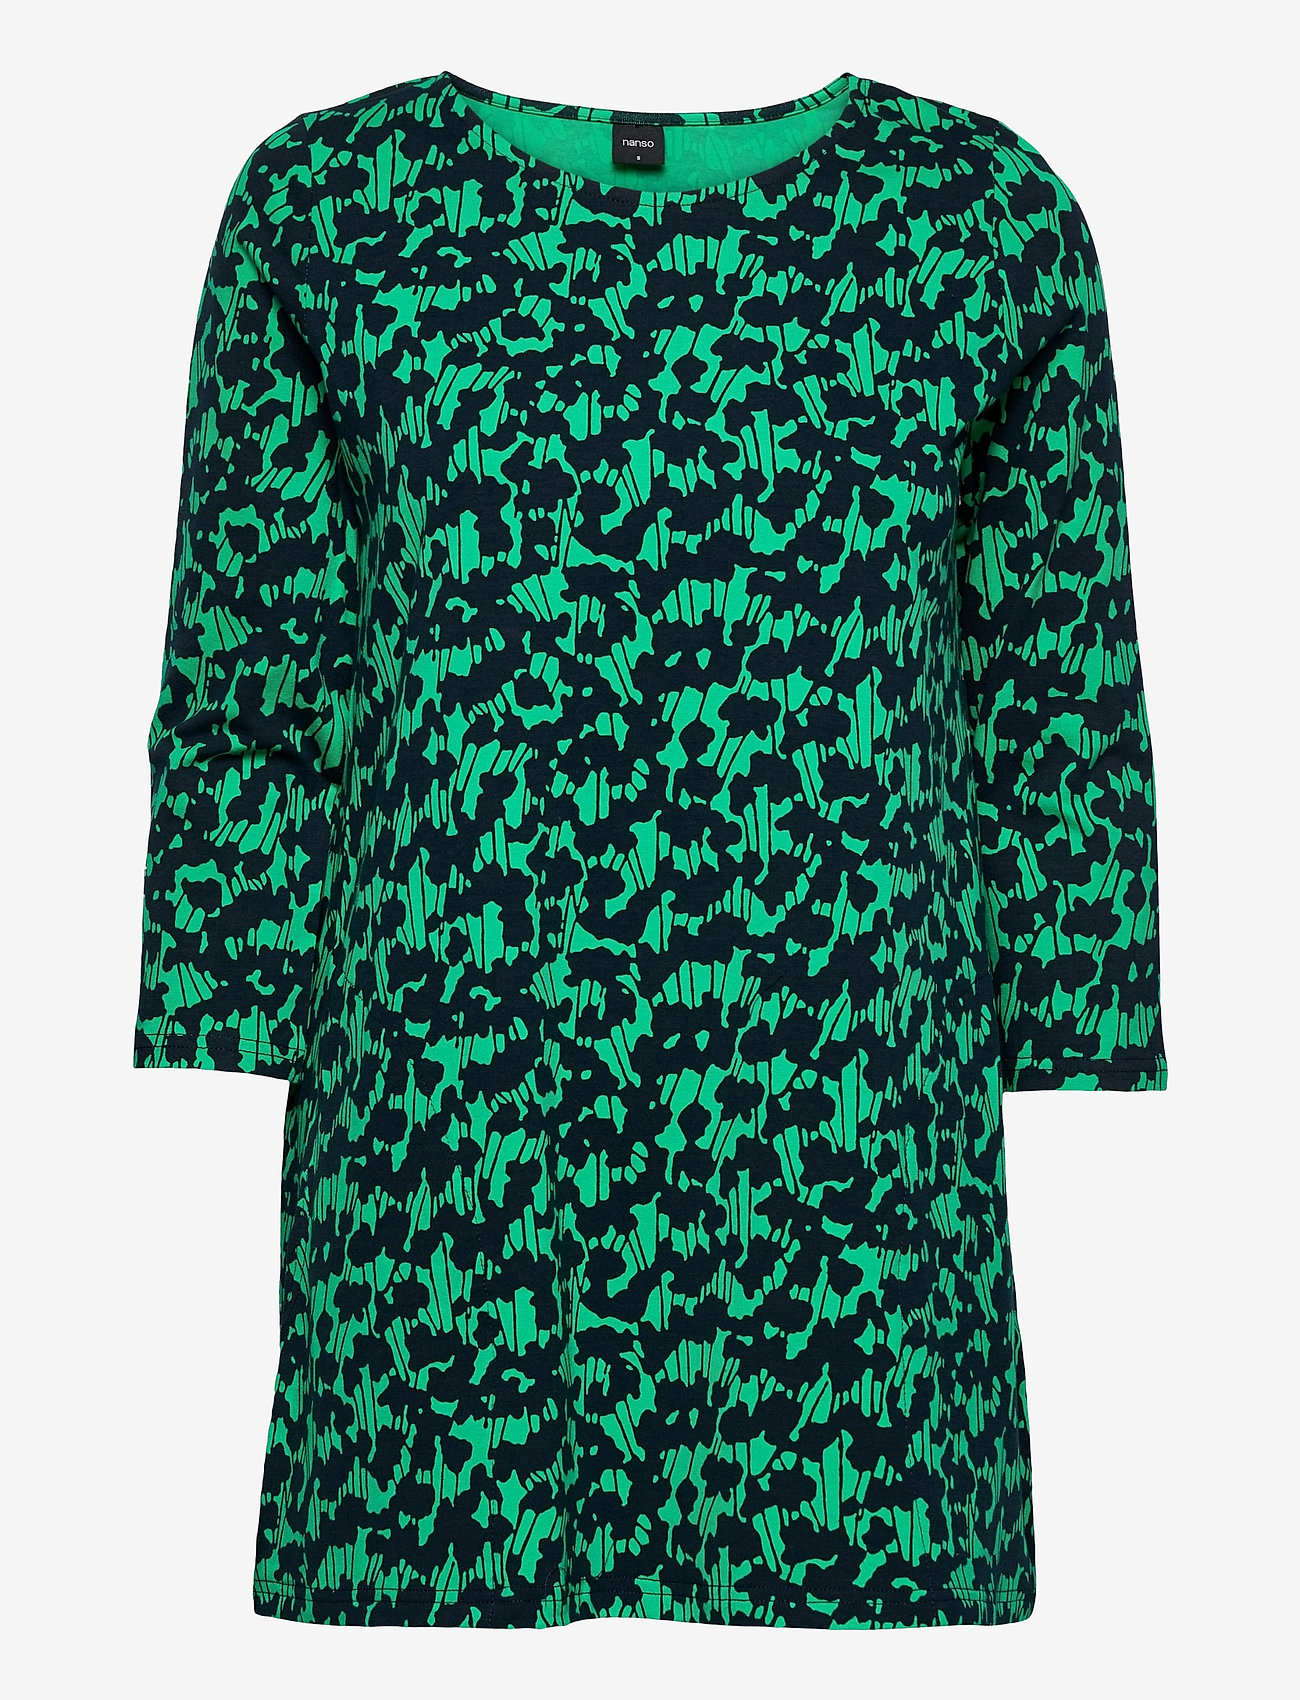 Nanso - Ladies tunic, Liito - tunikor - green - 0